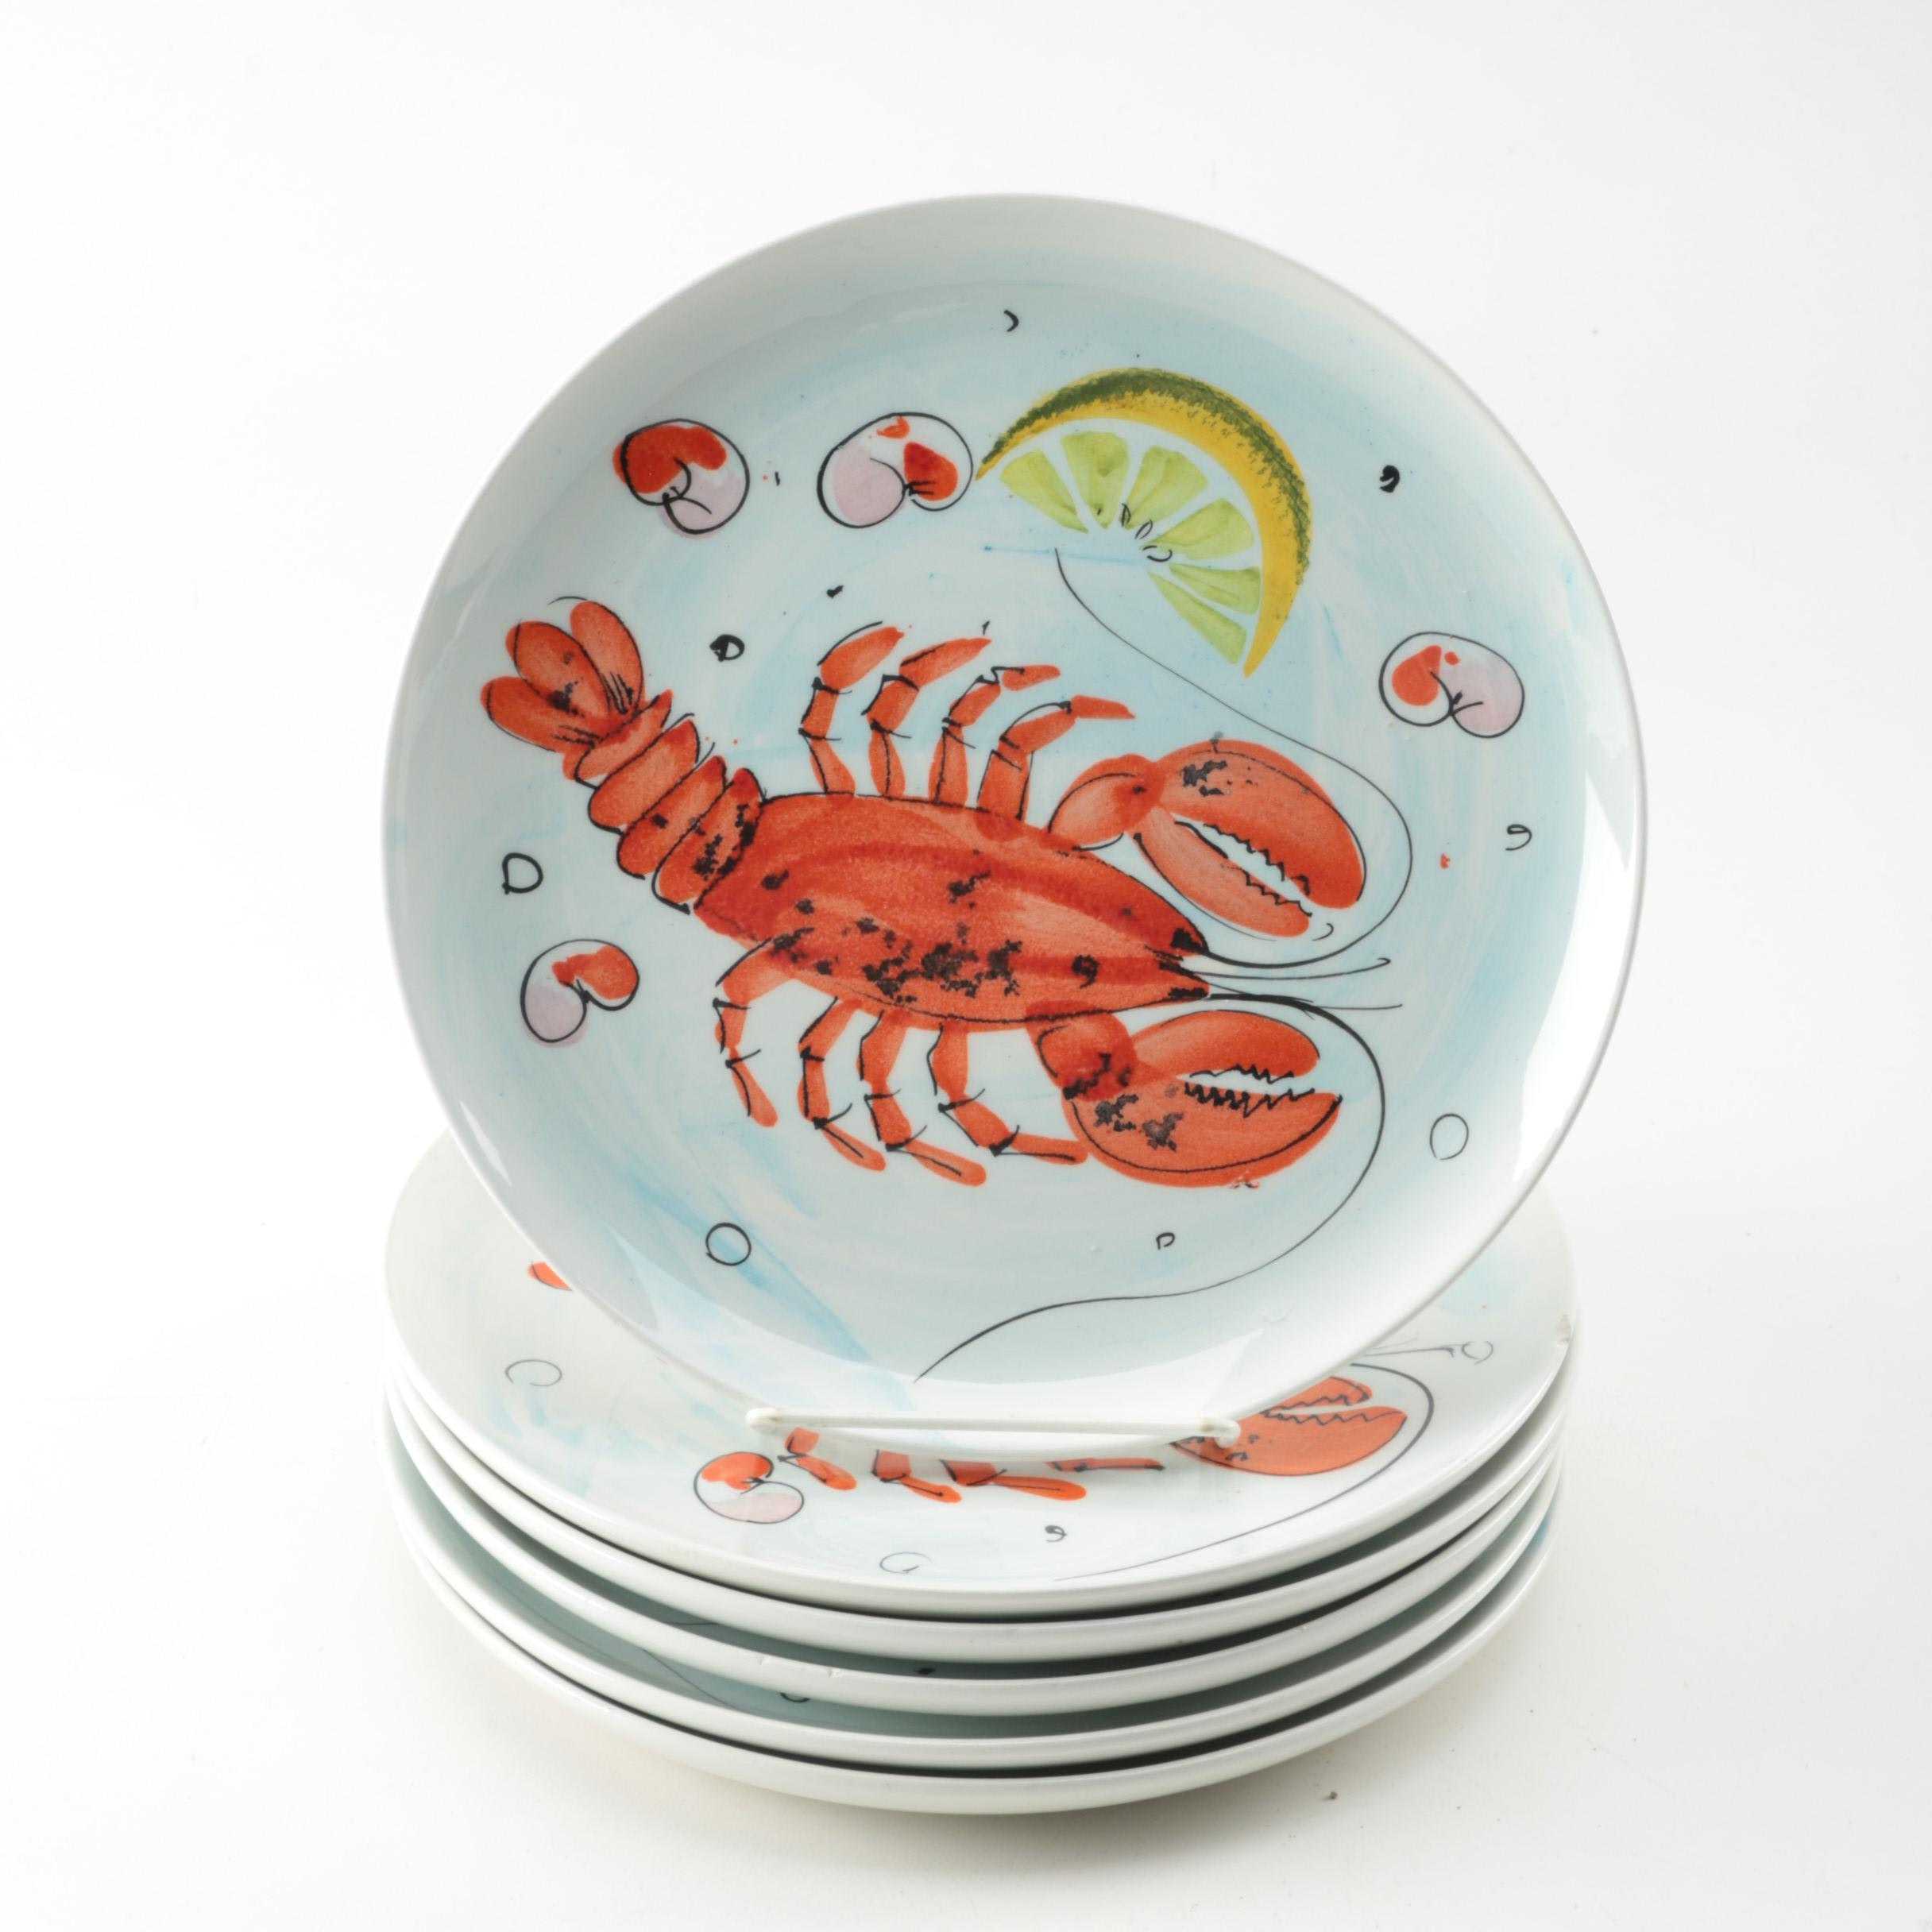 Six Italian Porcelain Hand-Painted Plates